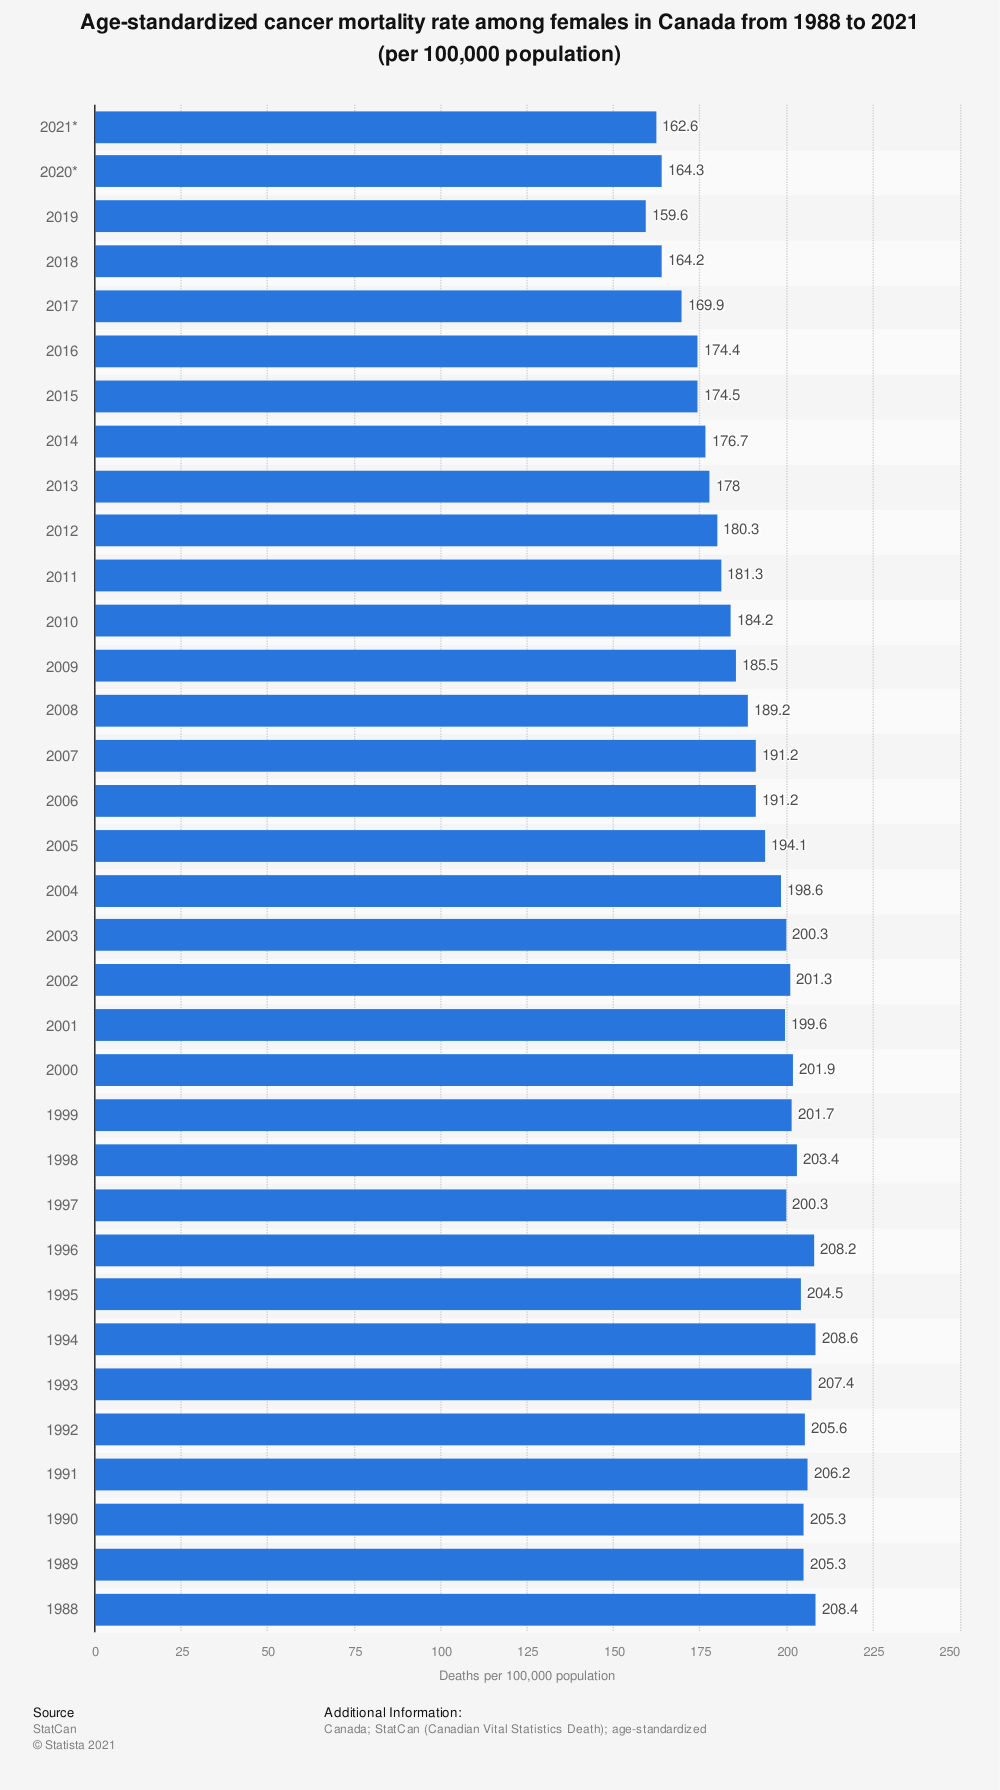 Statistic: Age-standardized cancer mortality rate among females in Canada from 1988 to 2017 (per 100,000 population) | Statista